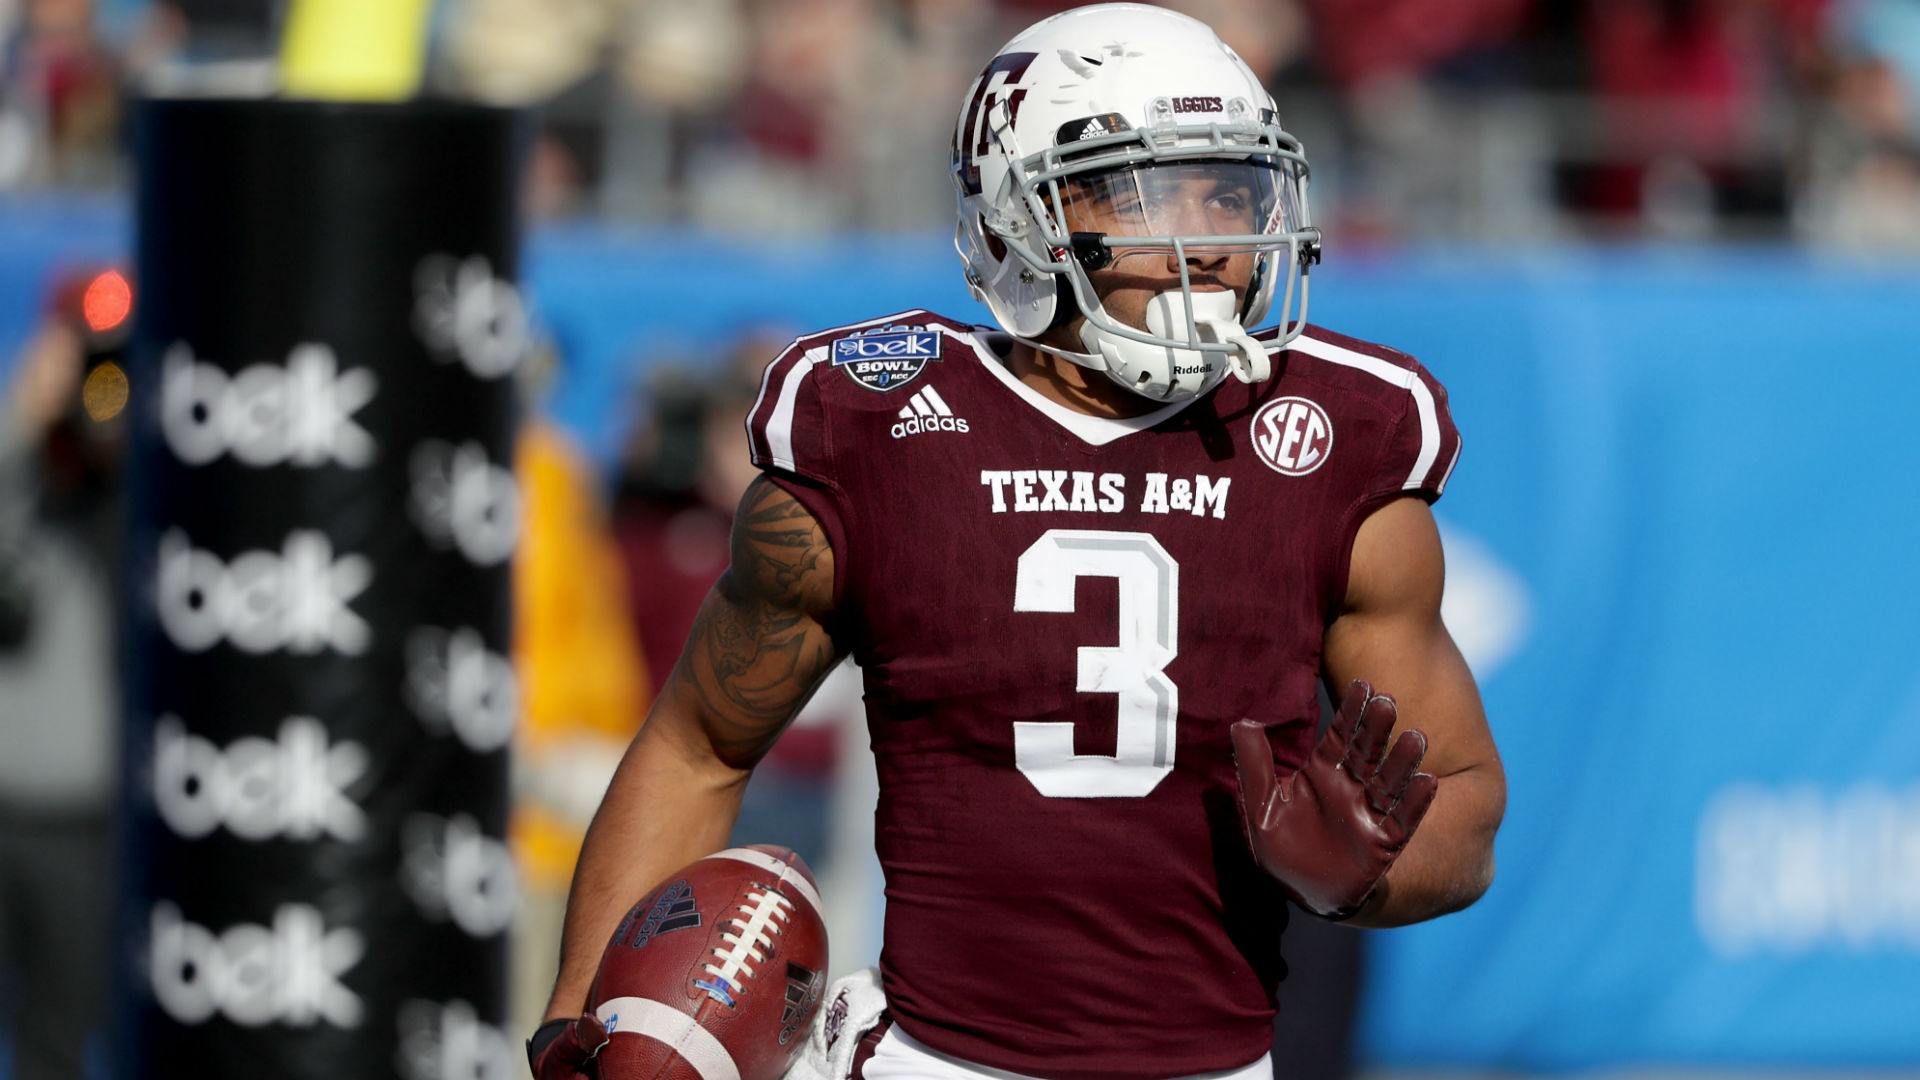 Cardinals aware of Christian Kirk arrest before draft